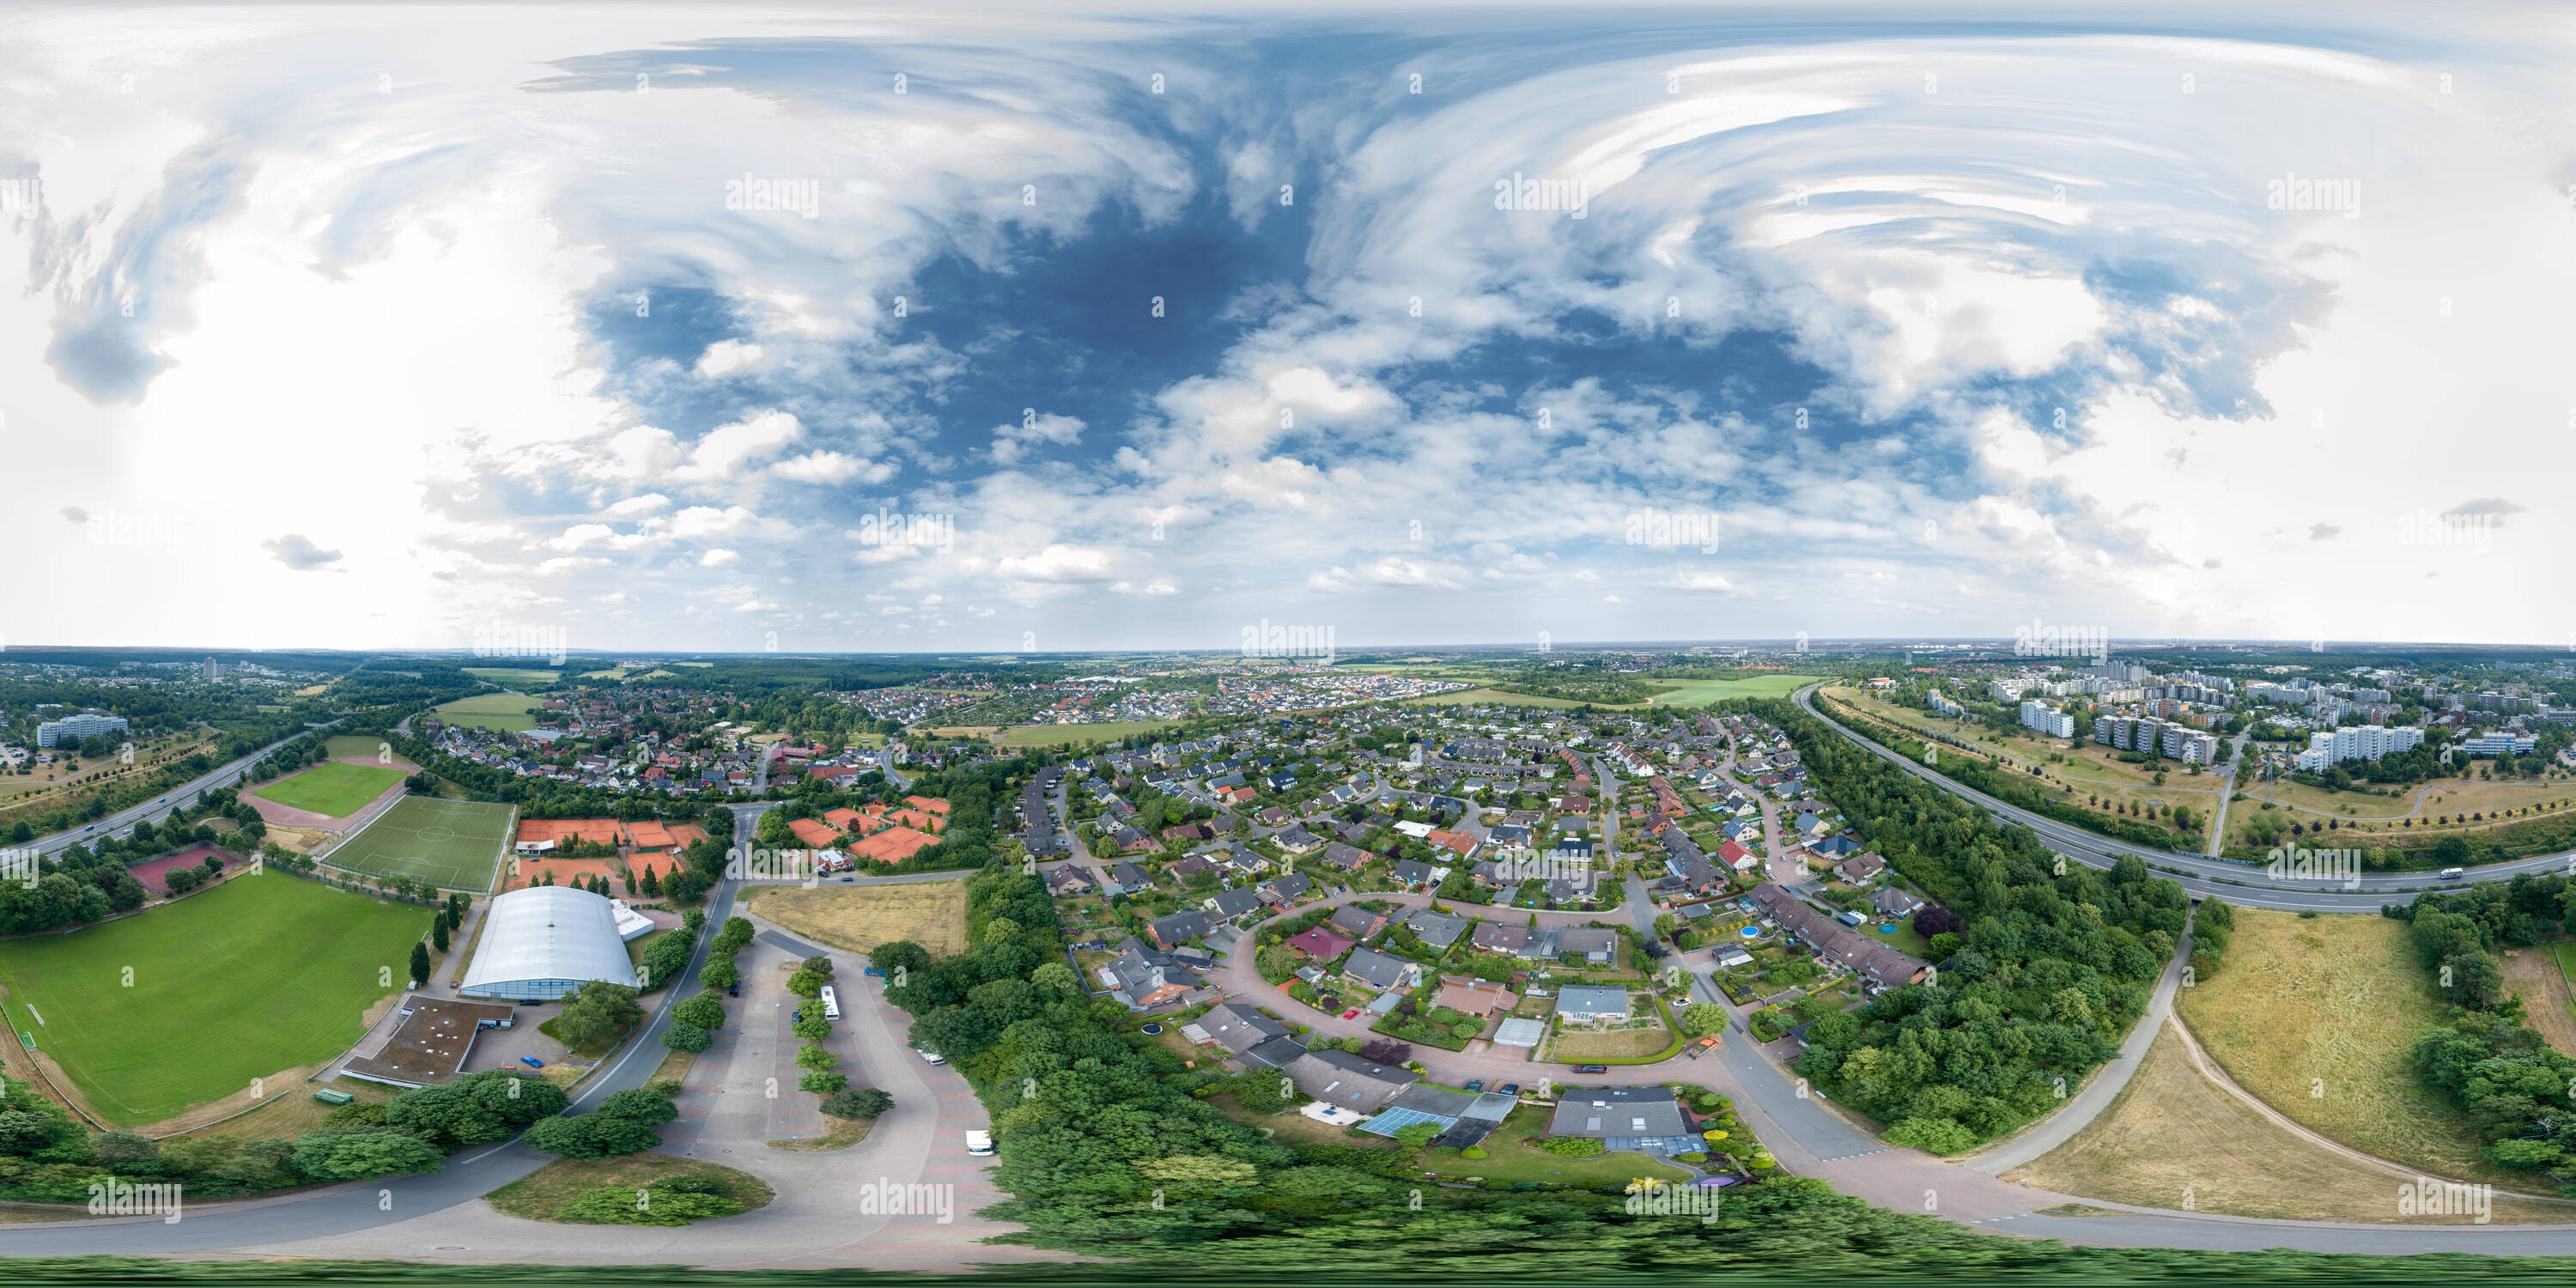 Suburb of a North German city with residential buildings and a sports facility, panoramic view from the air with the drone taken - Stock Image